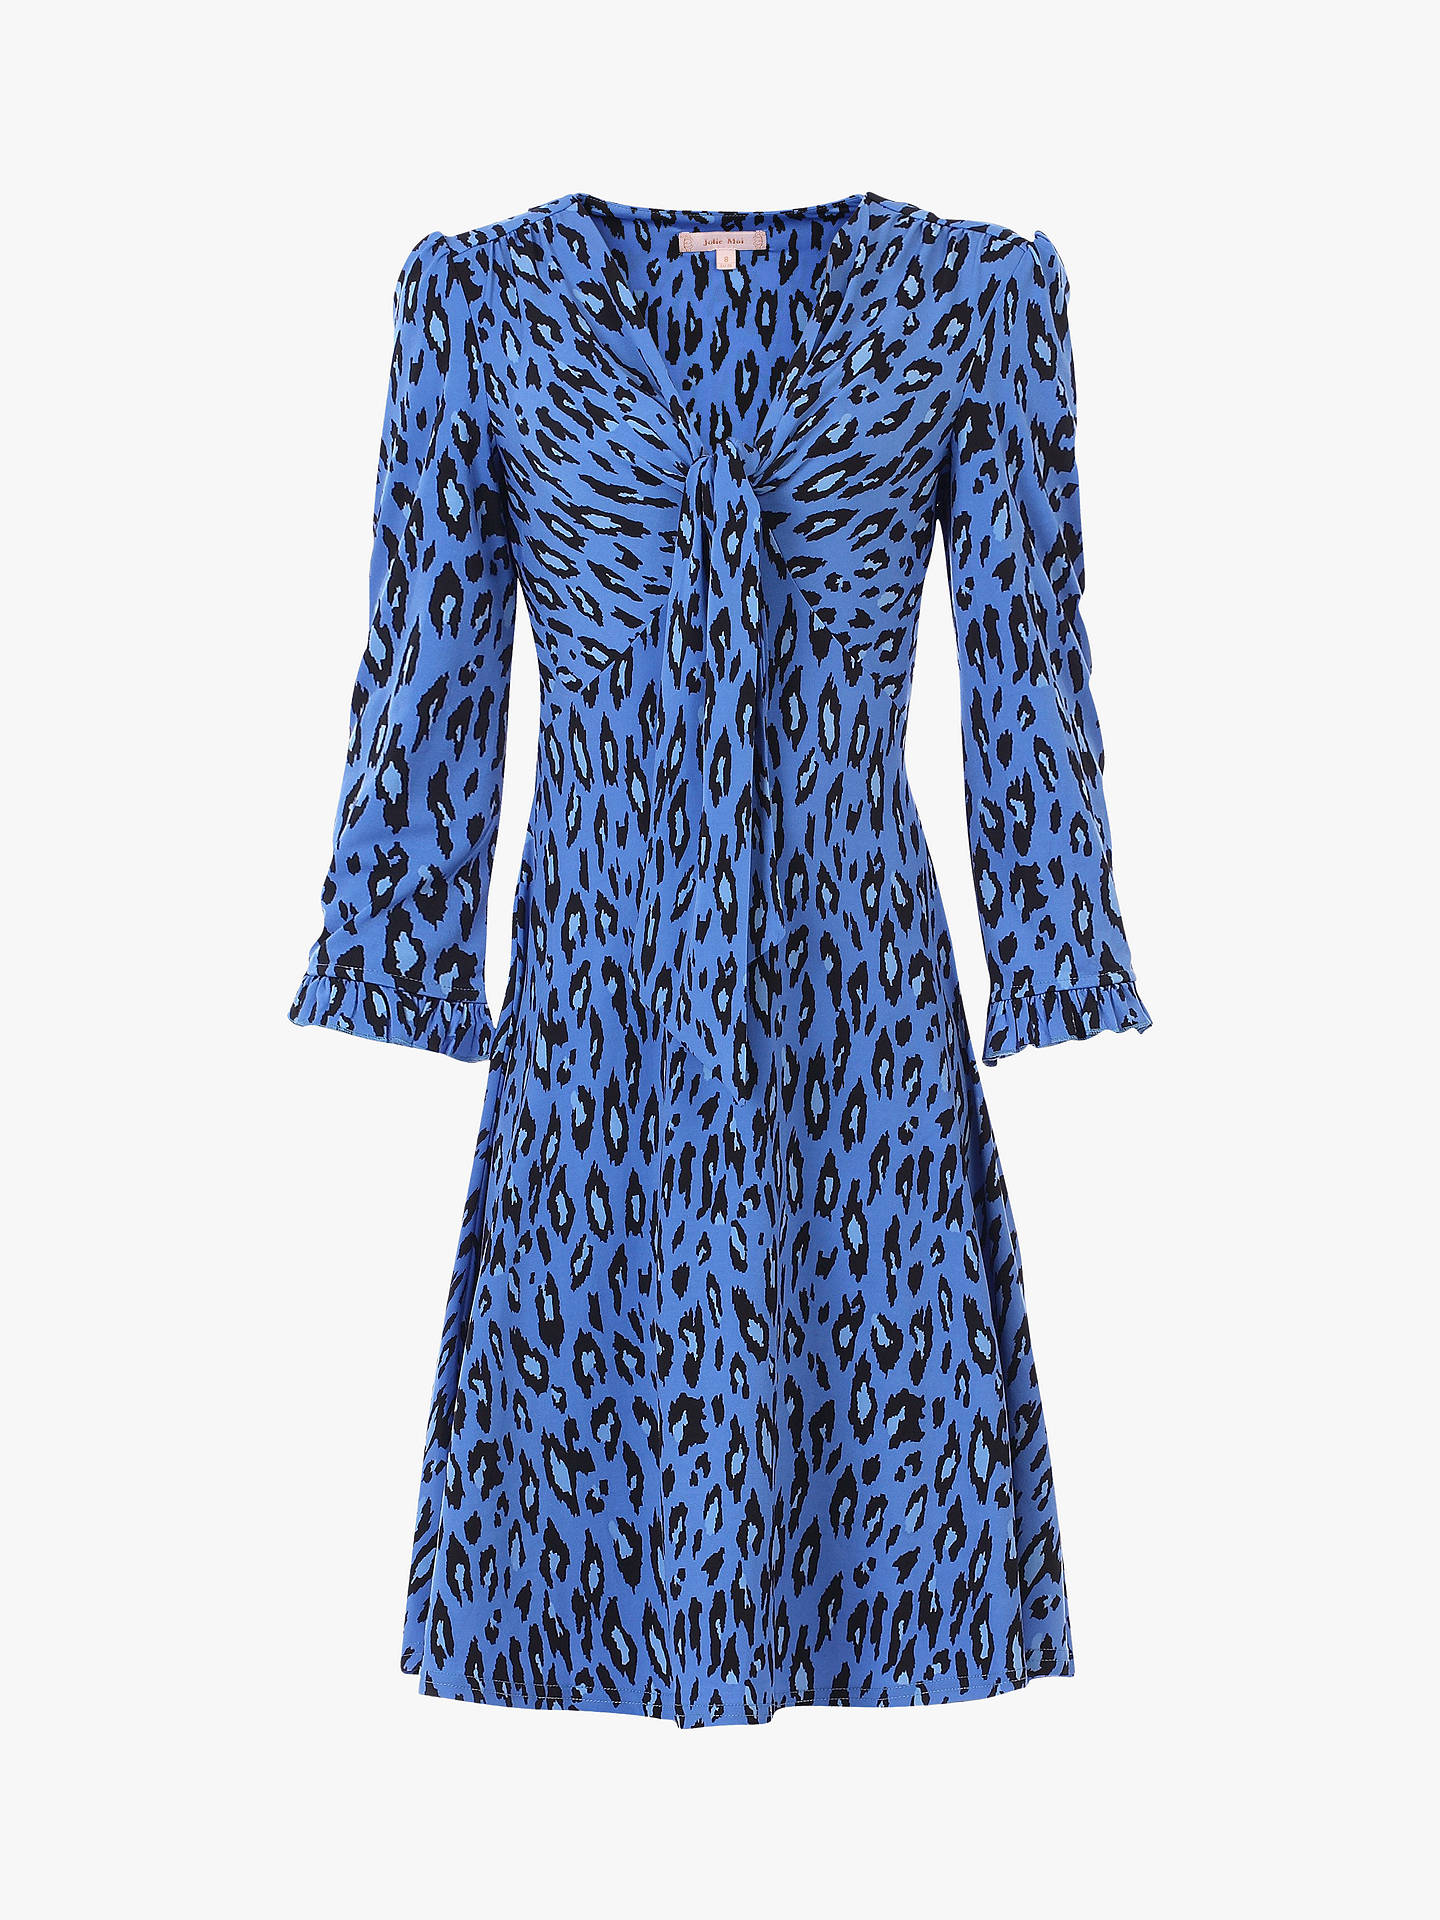 Buy Jolie Moi Leopard Print Jersey Dress, Blue, 14 Online at johnlewis.com